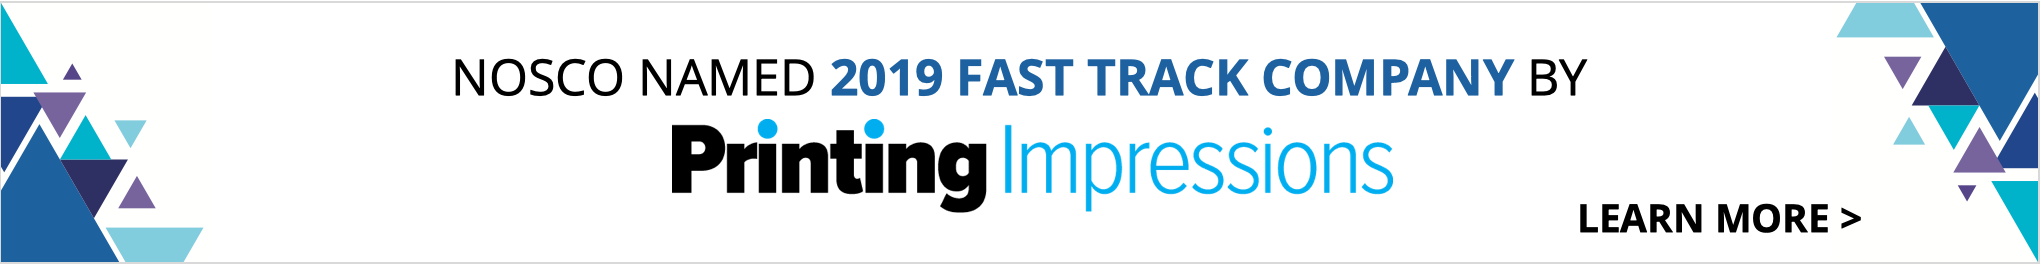 PrintingImpressions_FastTrackCompany_2019-20